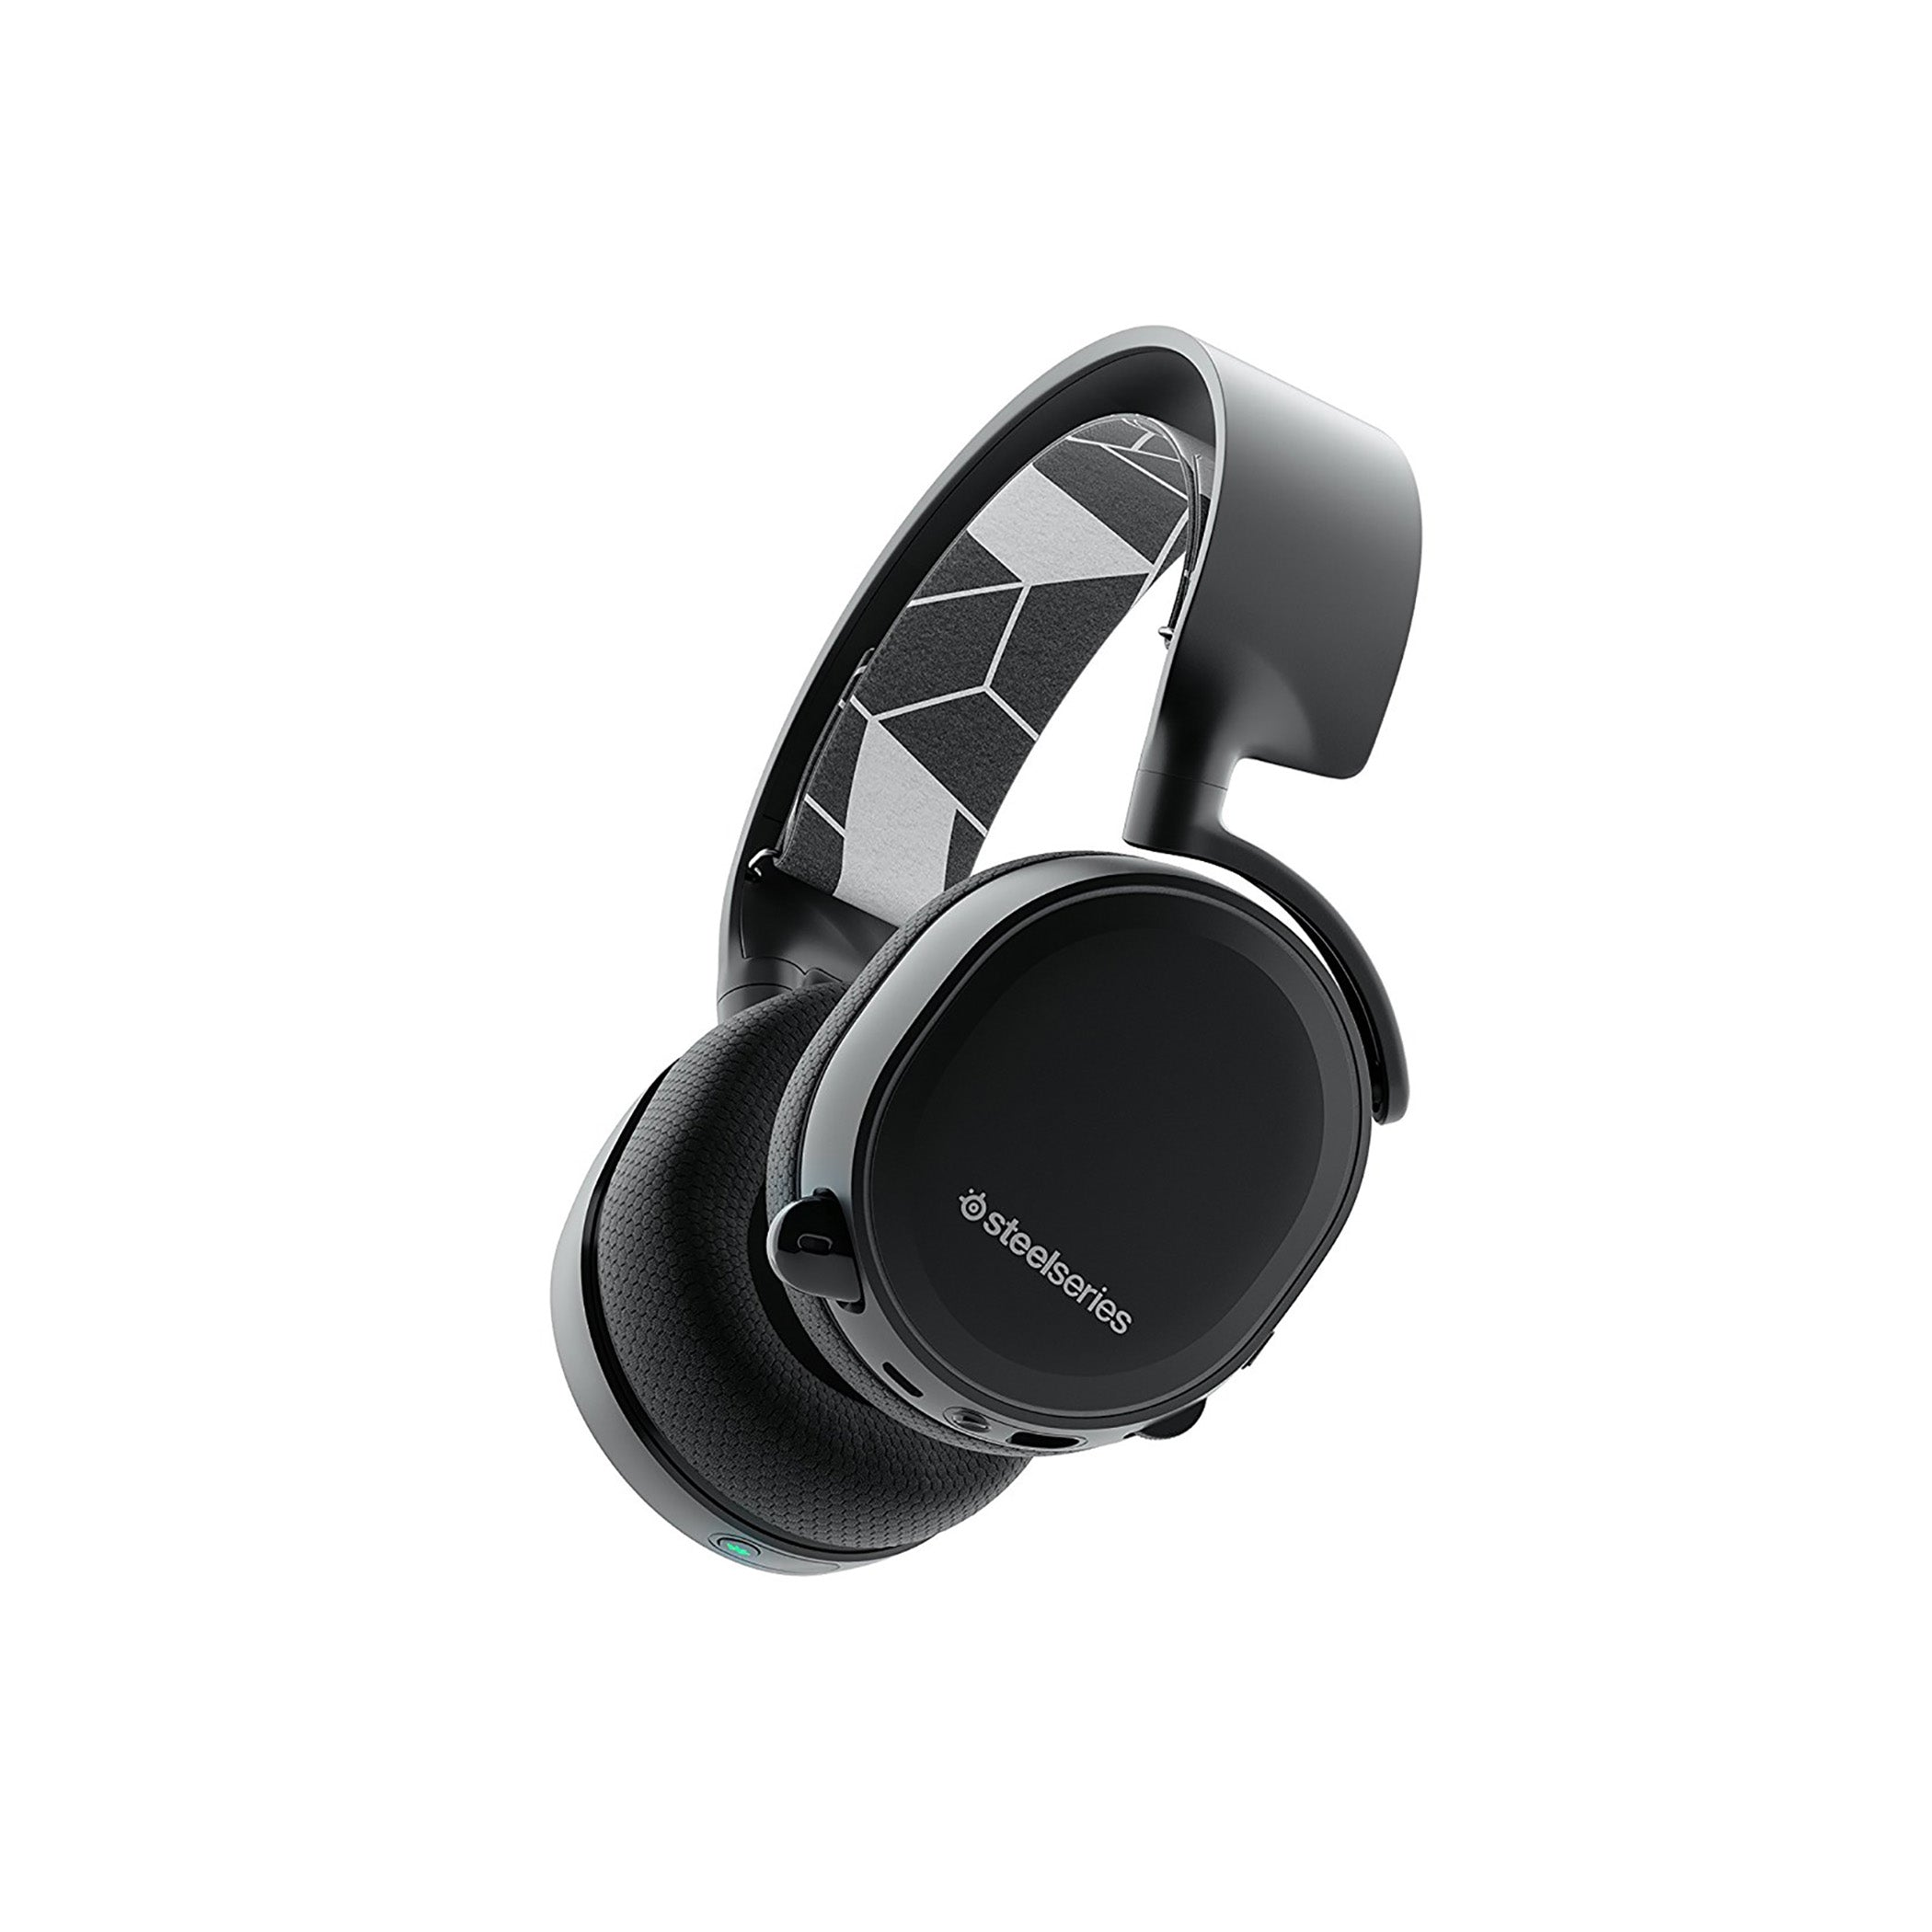 Audio Steelseries Siberia 840 Wireless Bluetooth Arctis 3 Headphone